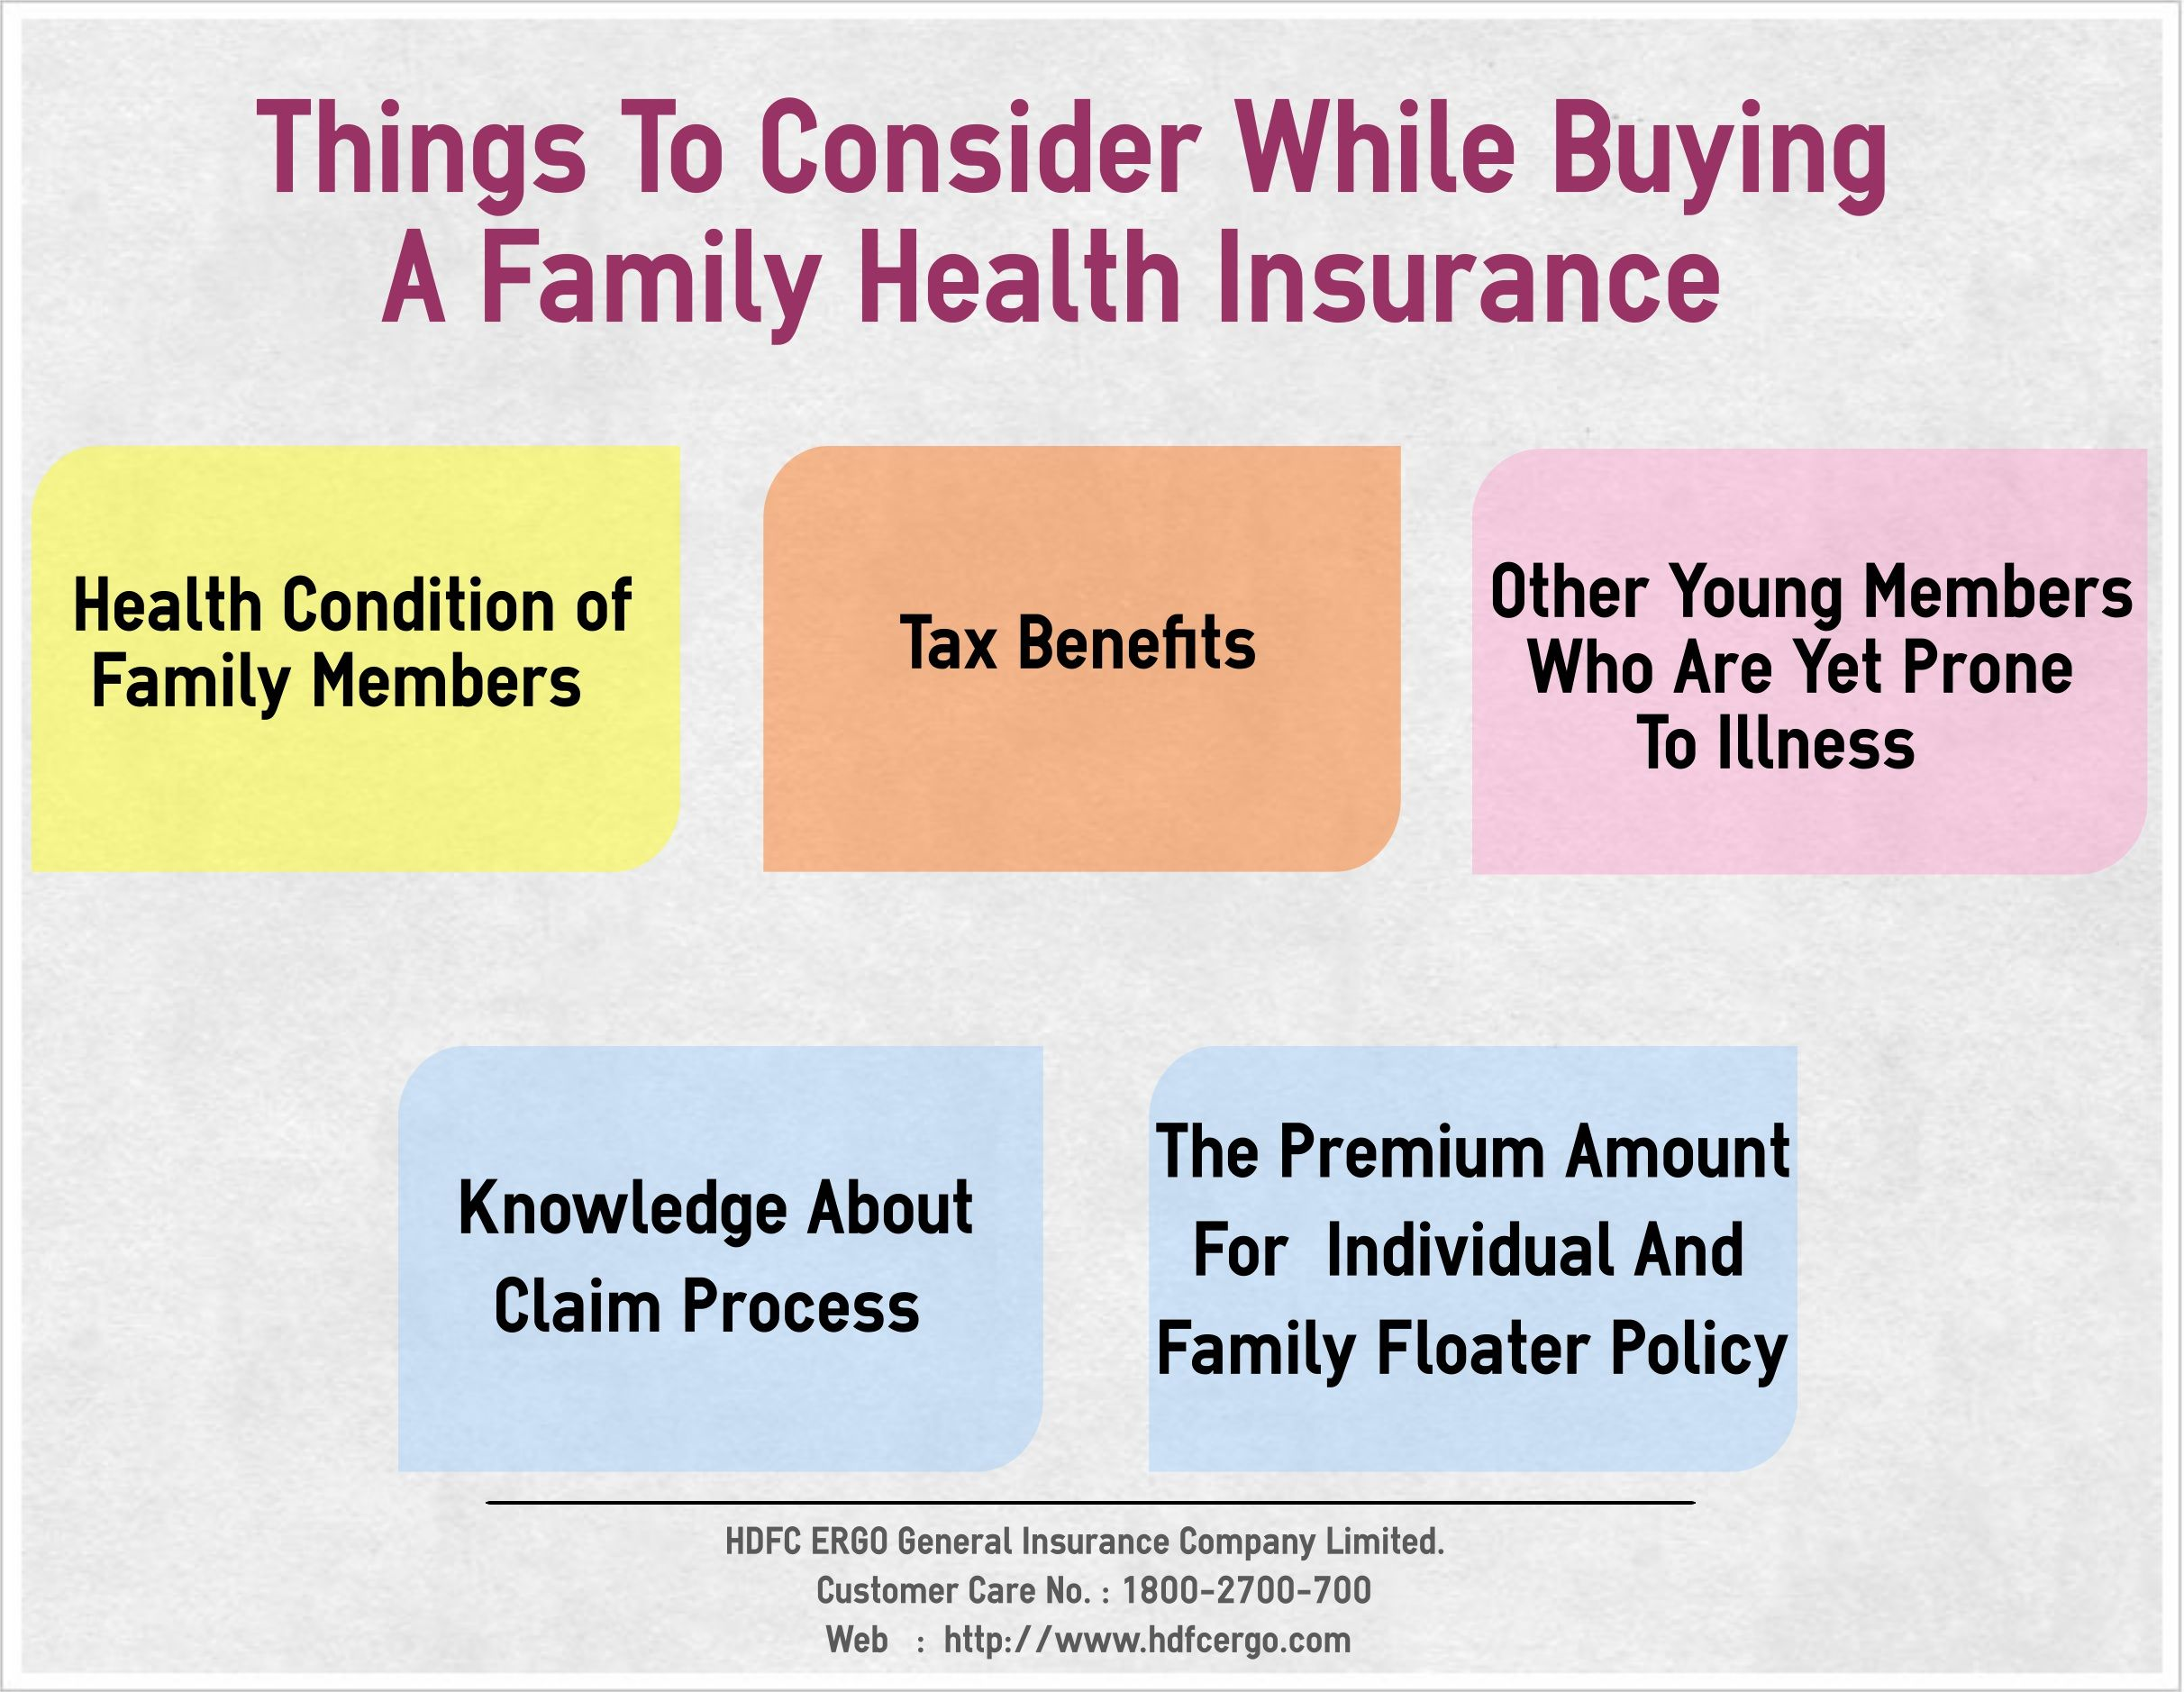 Things To Consider While Buying A Family Health Insurance Family Health Insurance Health Insurance Family Health